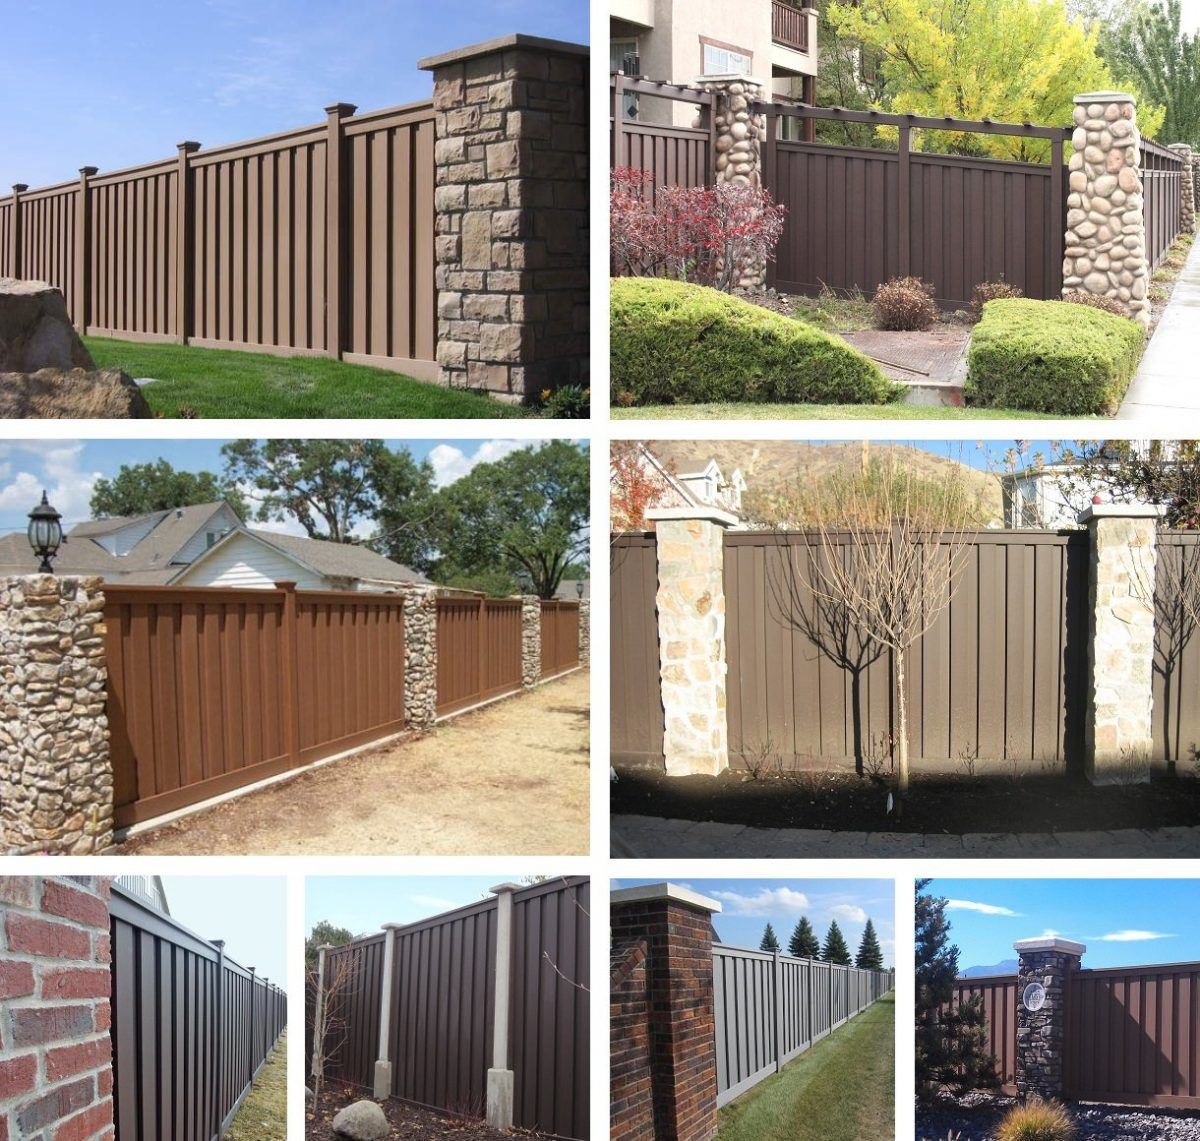 A collage of Trex Fences built between stone colums and brick pillars.